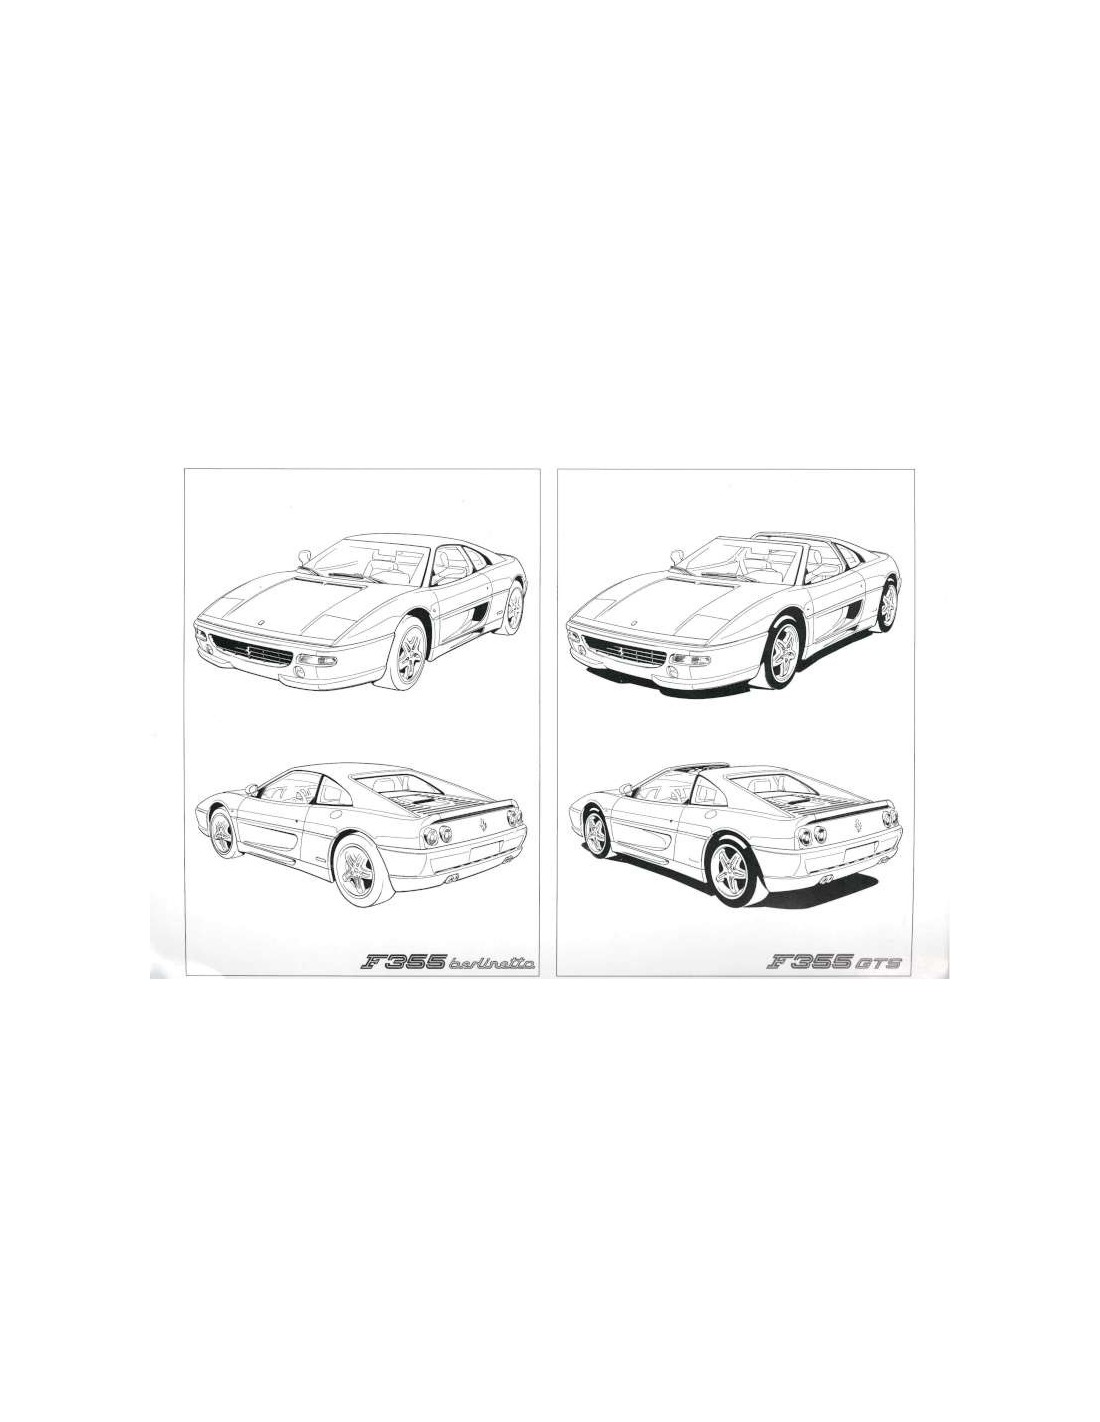 1995 FERRARI F355 OWNERS MANUAL